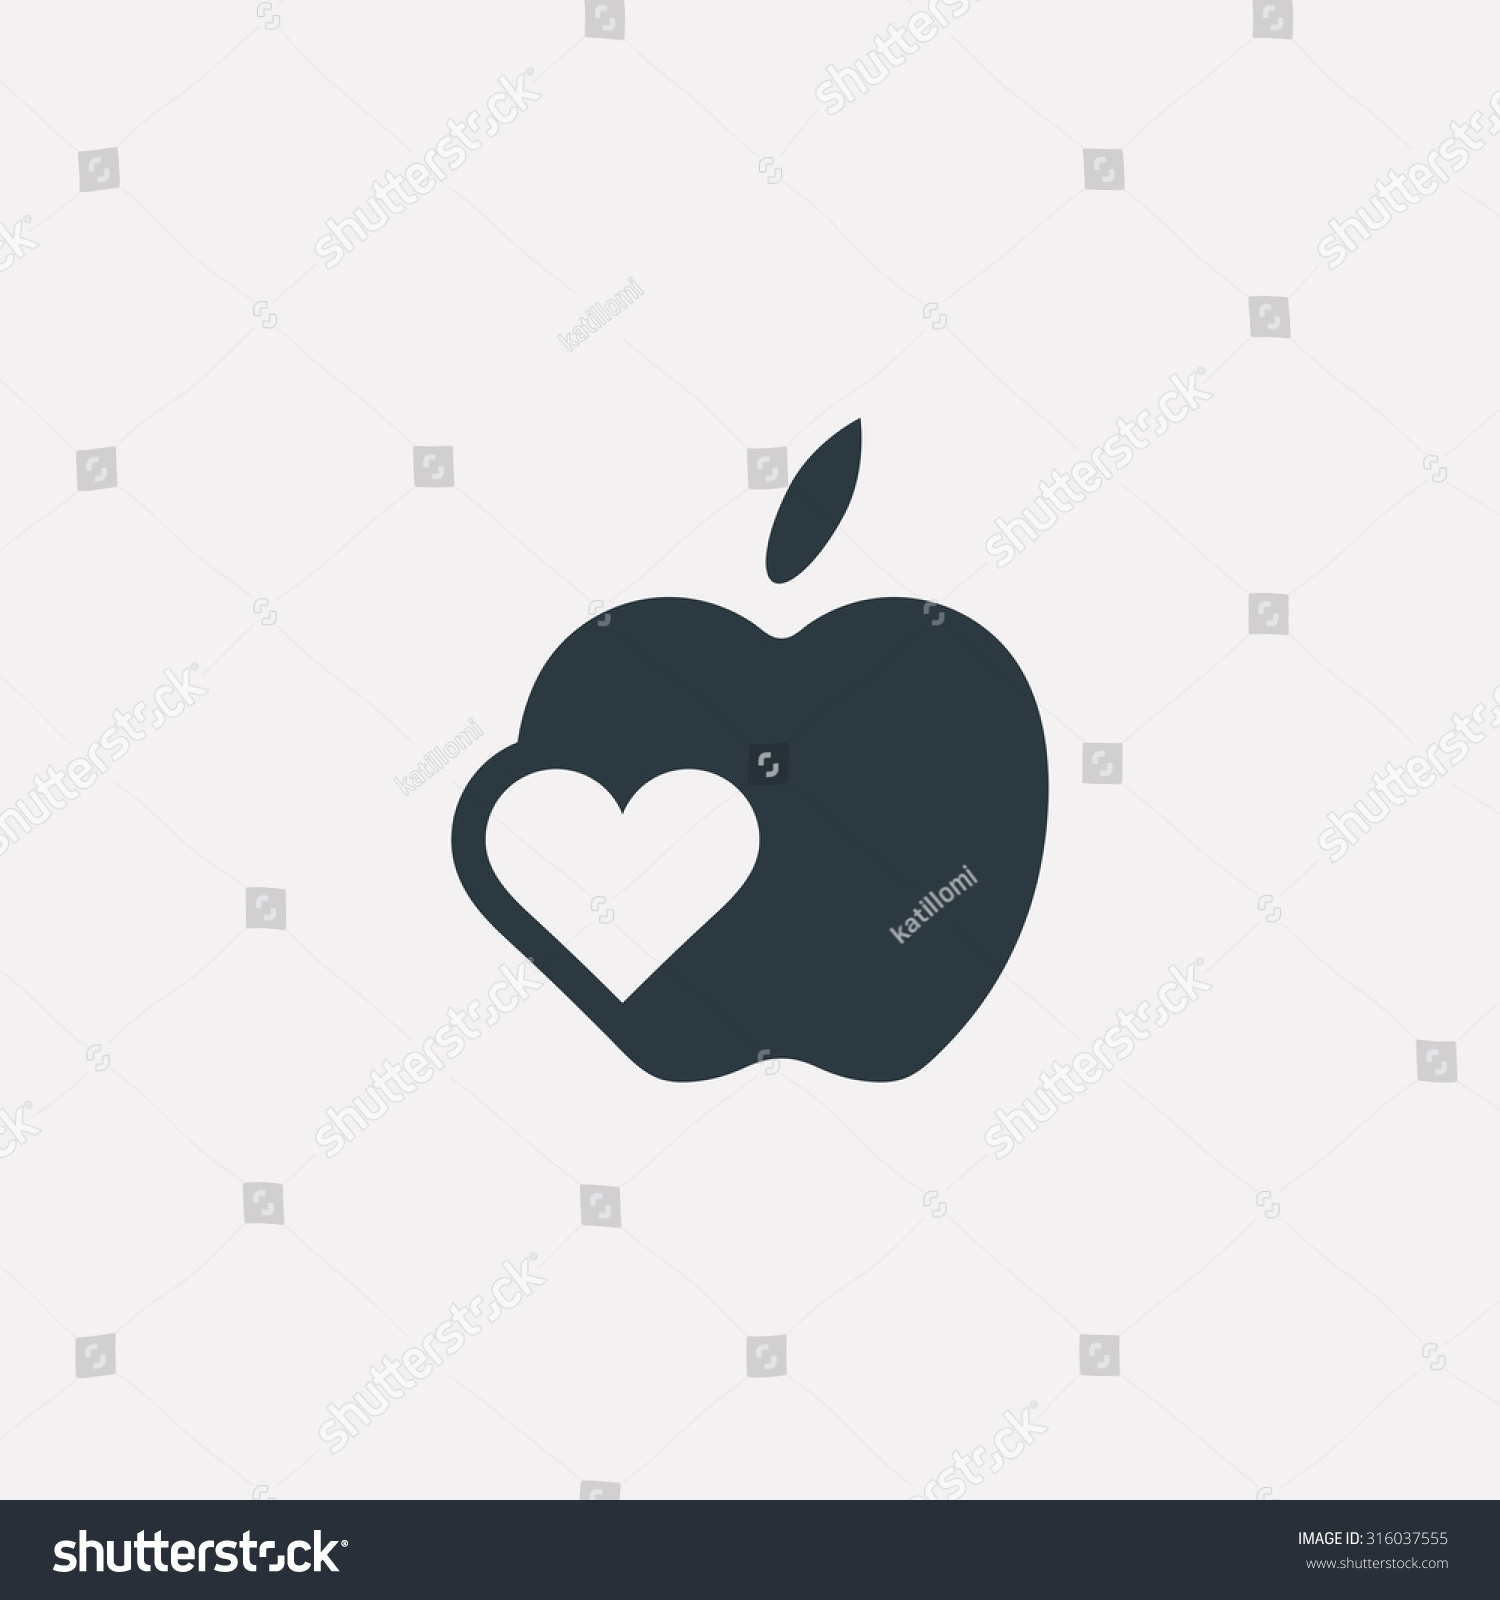 Vector graphic illustration apple symbol heart stock vector vector graphic illustration of an apple symbol with a heart inside in negative space buycottarizona